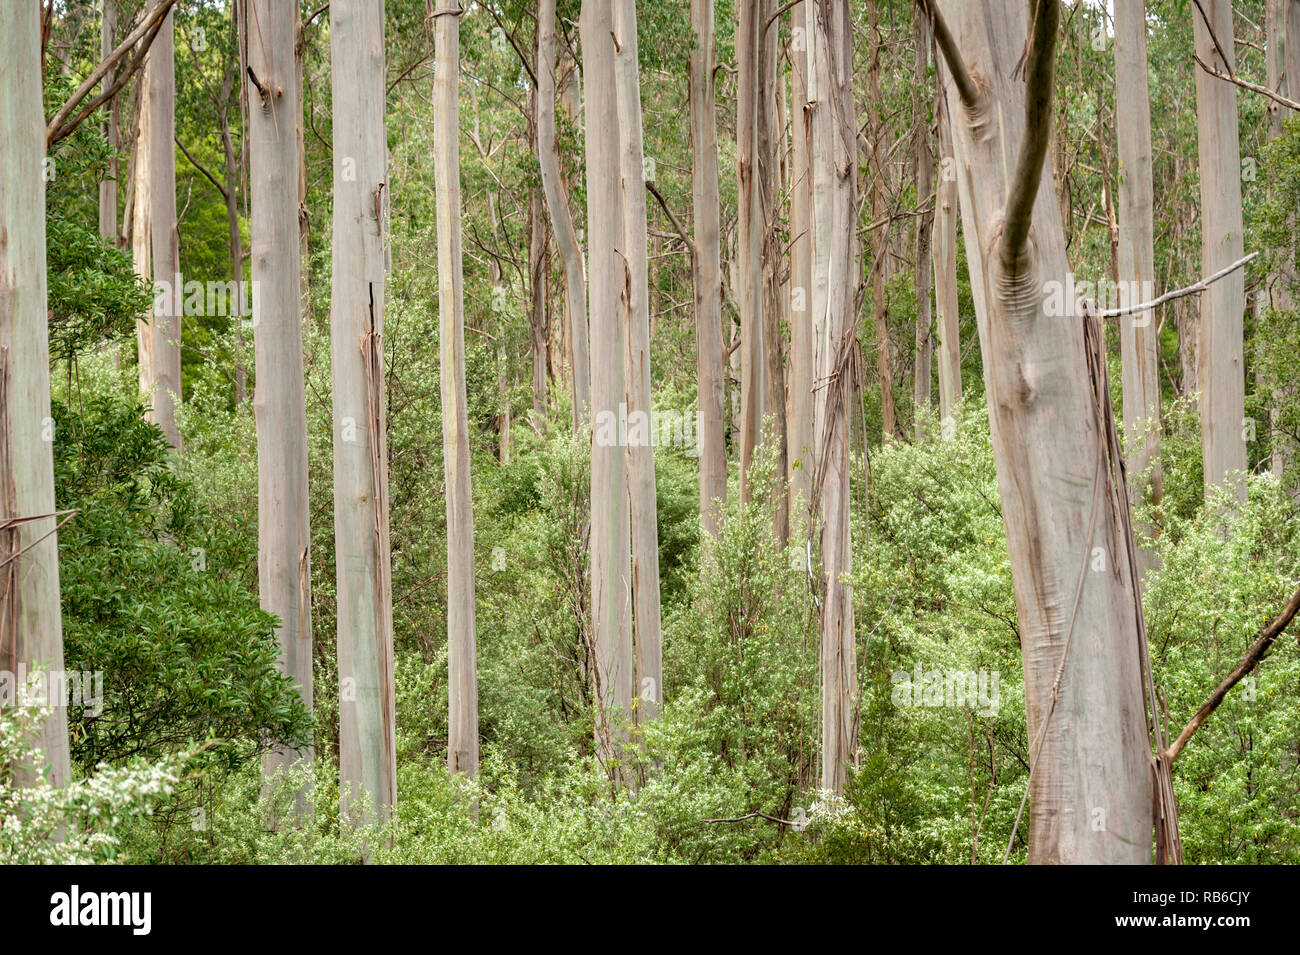 A stand of Australian gum trees - Stock Image